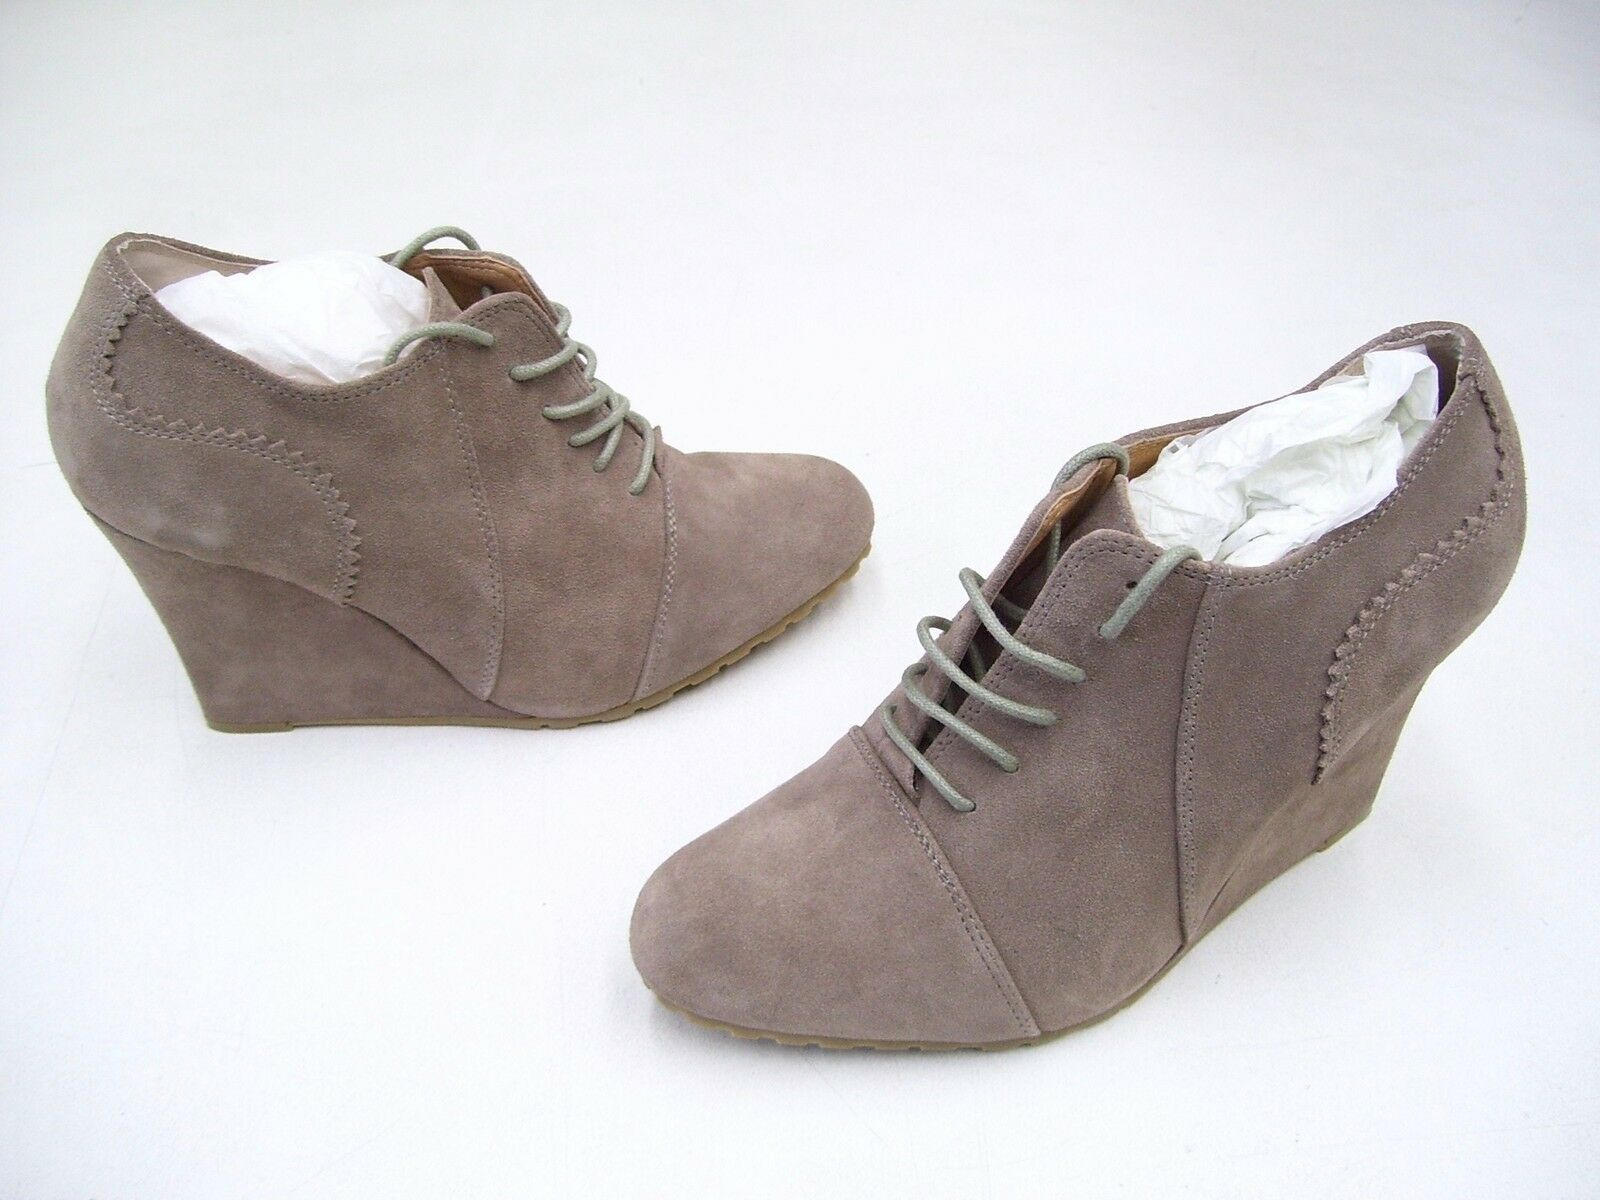 TONY BIANCO LYNX BEIGE SUEDE LACE UP ANKLE BOOTS DRESS SHOES SIZE 10 NEW